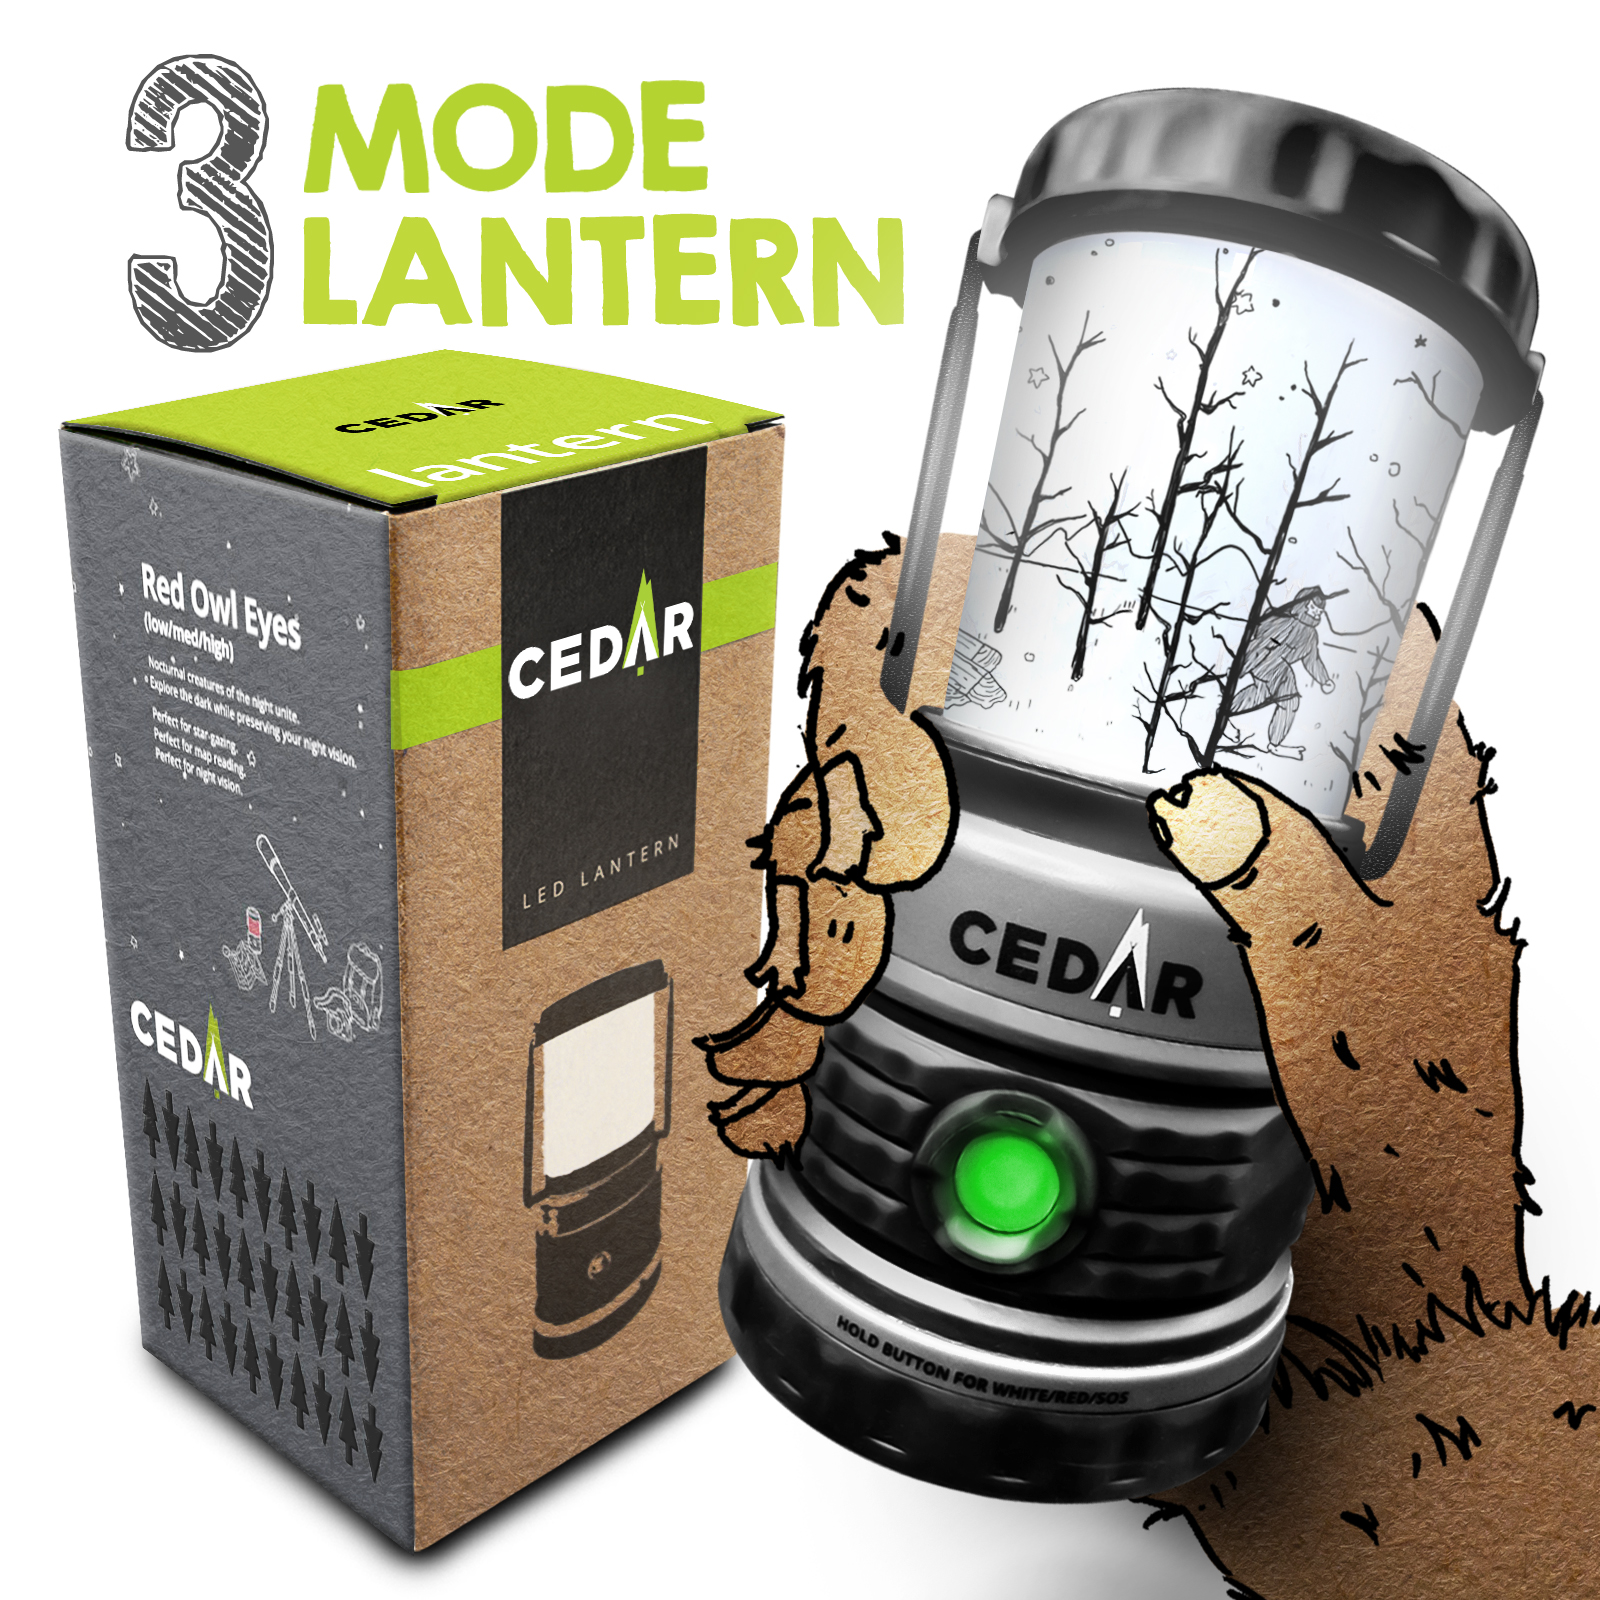 CEDAR 3-Mode LED Camping Lantern - White Red Light SOS Signal - 30-Day Low Power Mode - Super Bright 300 Lumens - Water Resistant - Aluminum Carabiner - Backpacking - Hiking - Emergencies